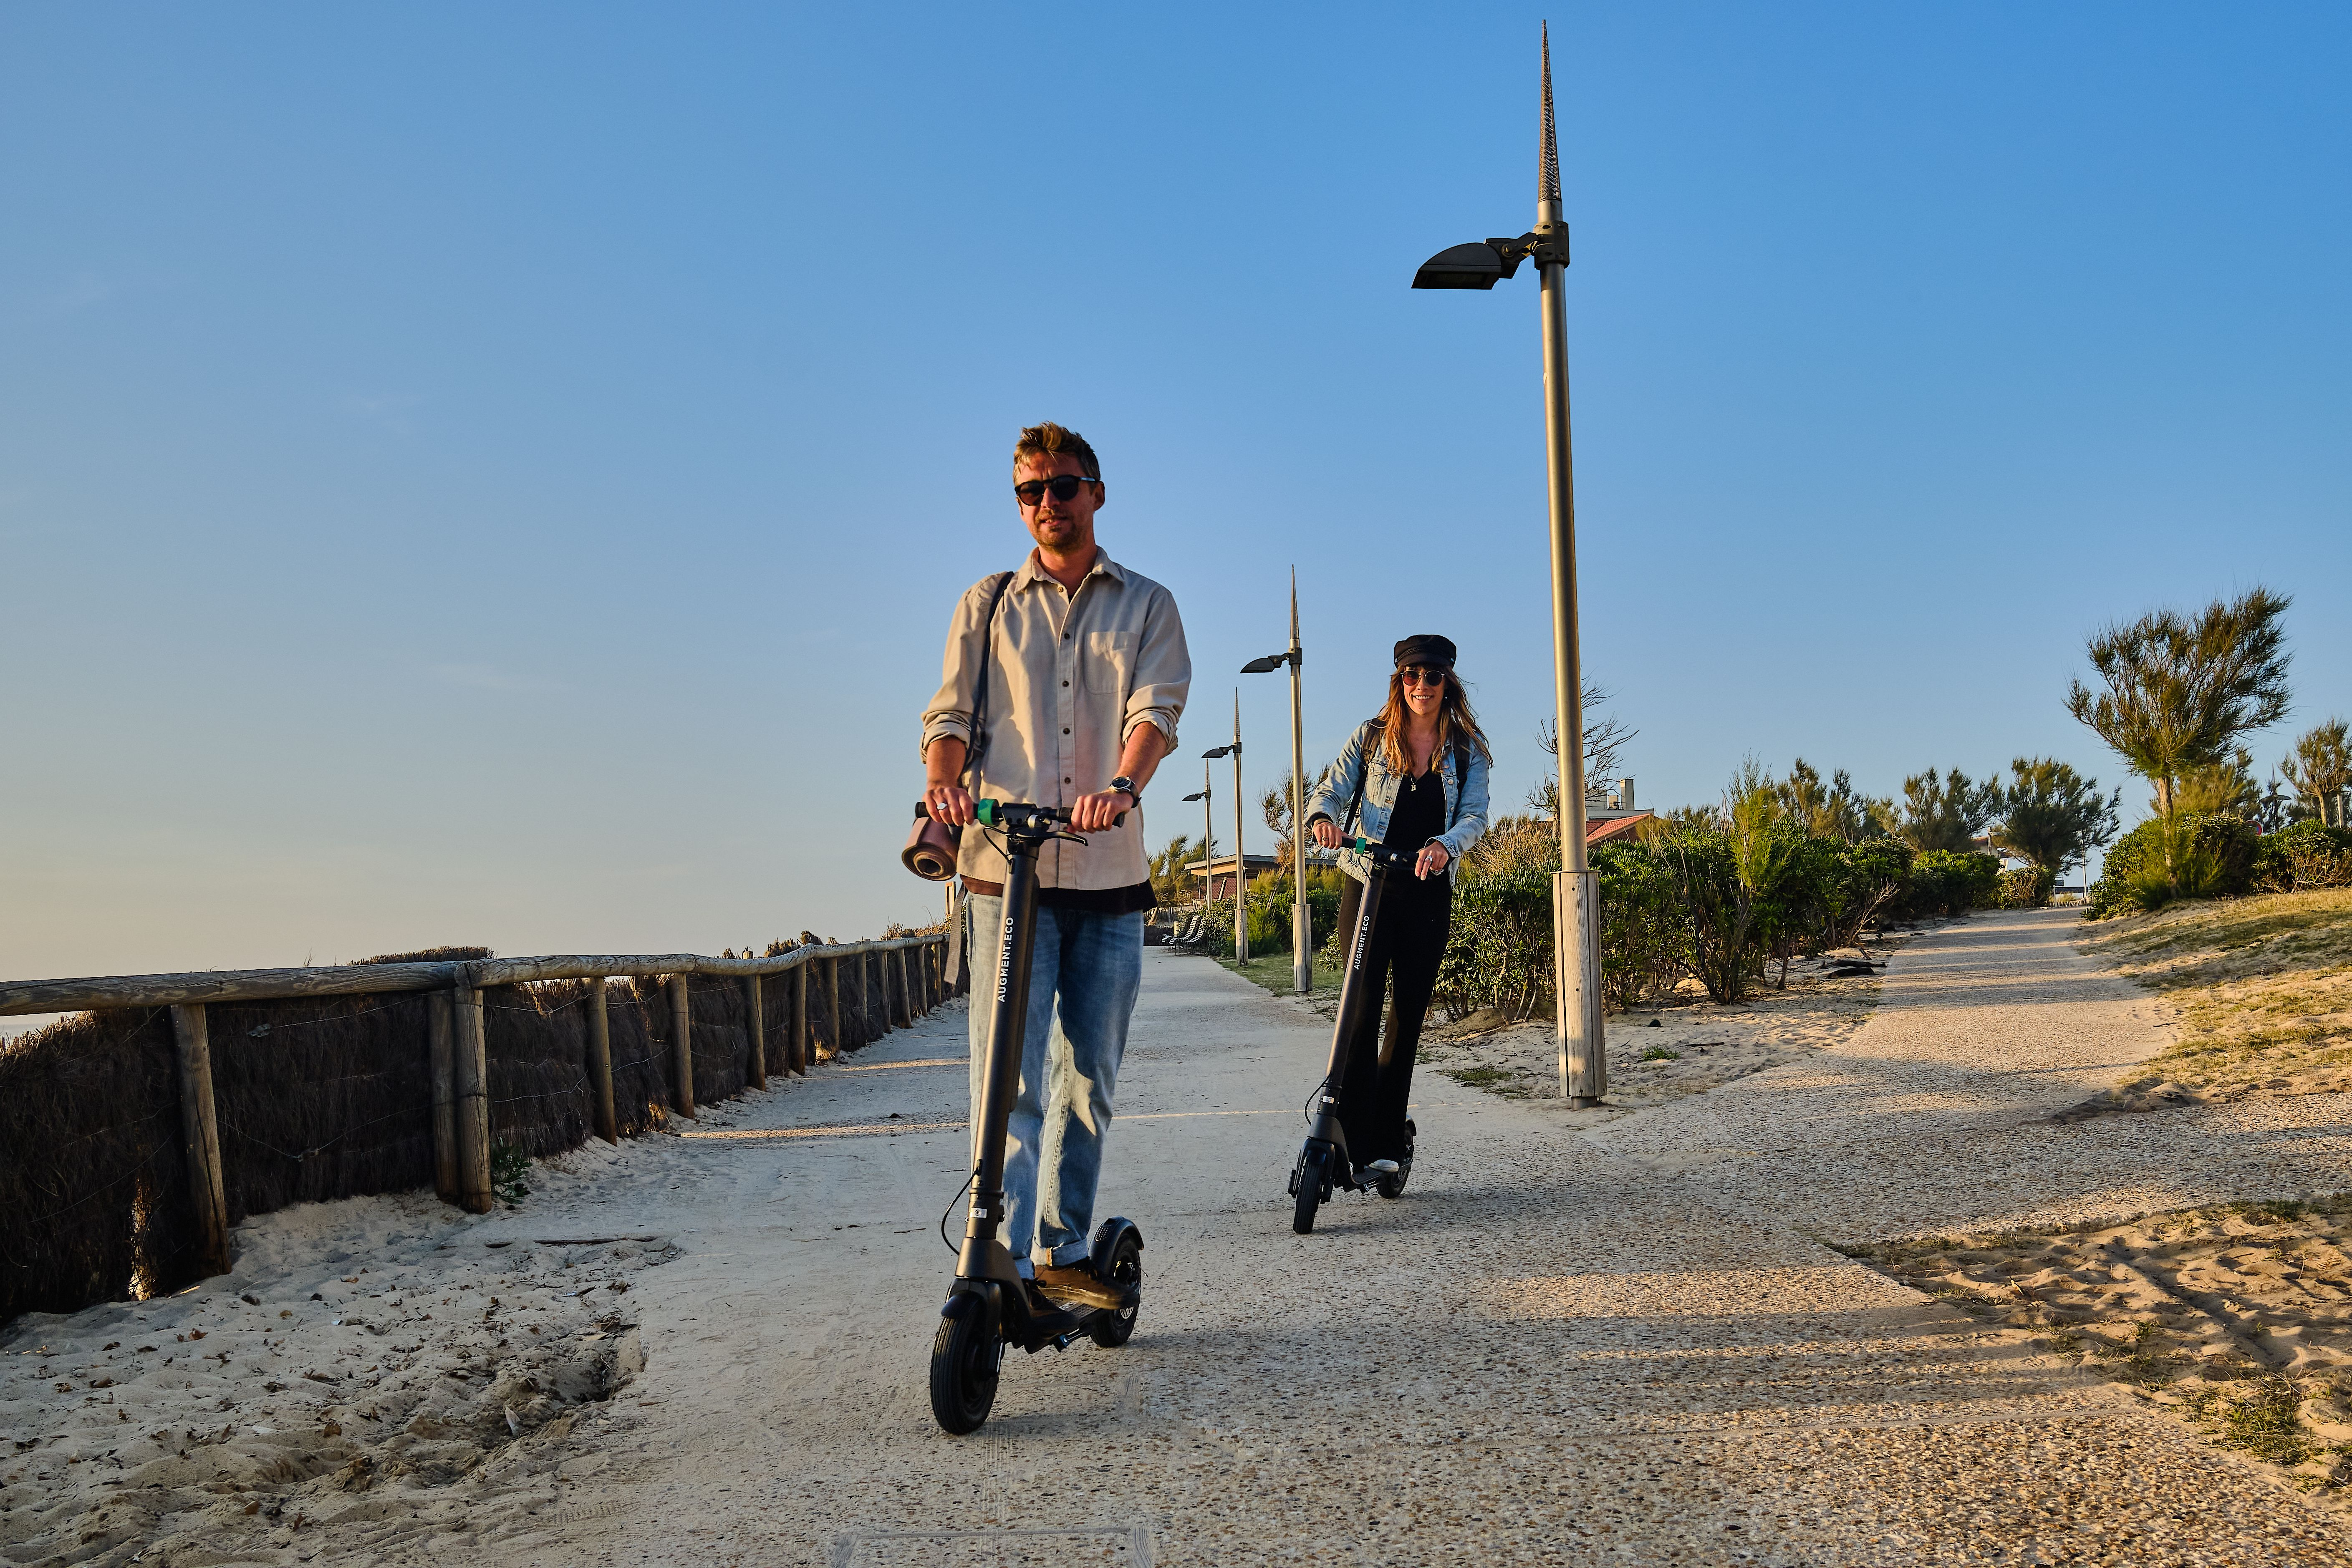 Augment ES 210 e-scooter on the beach